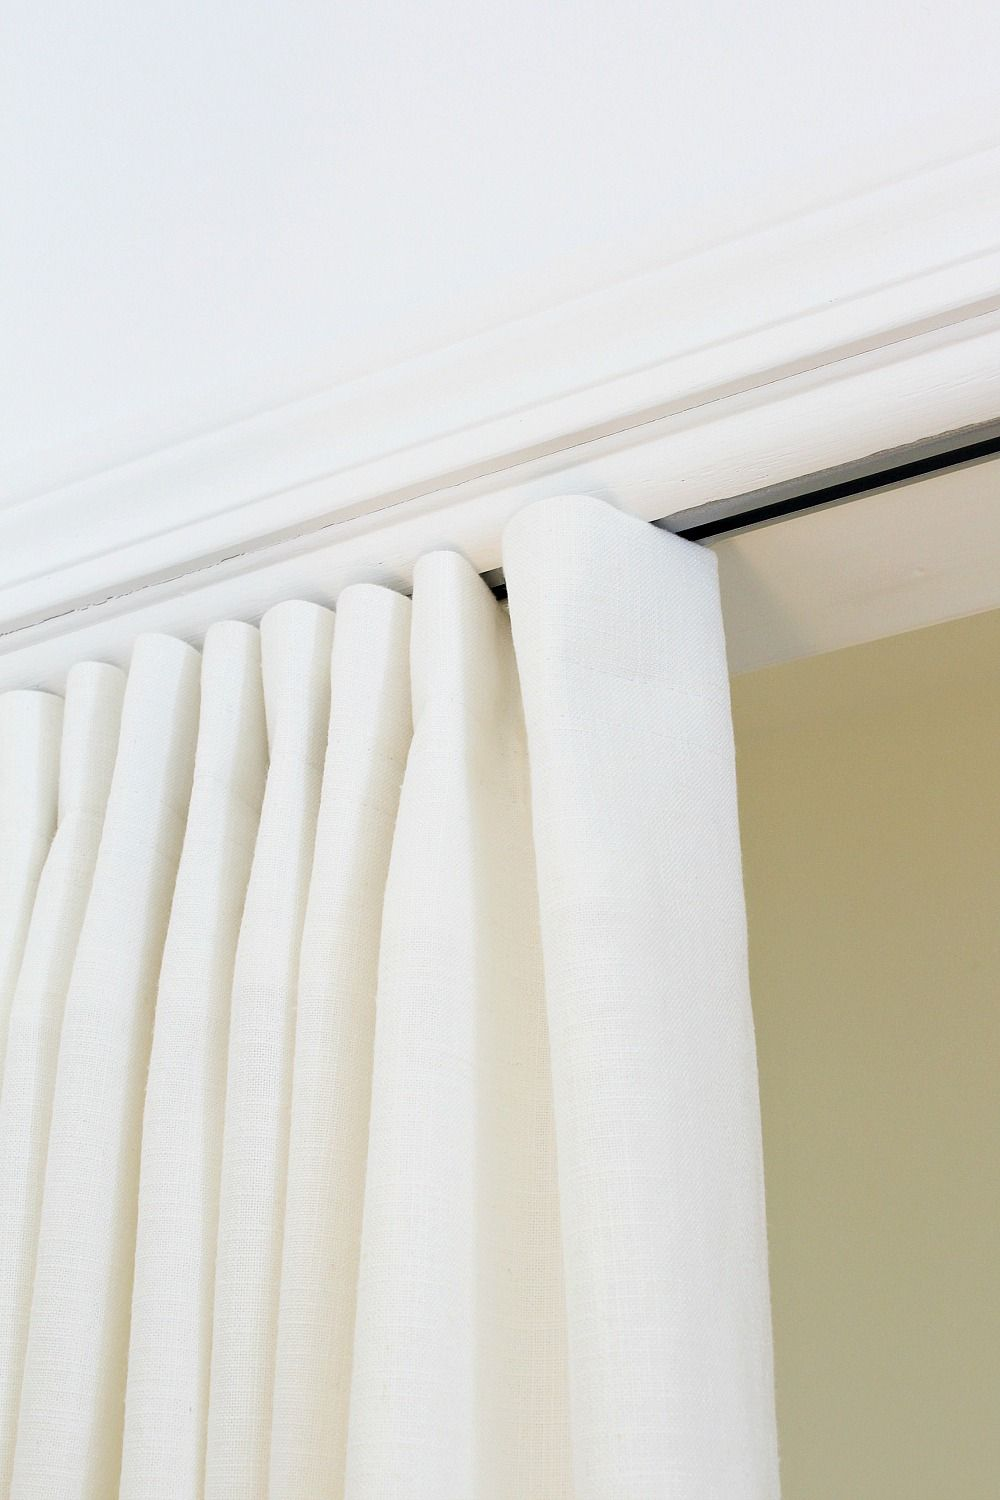 Simple Diy Curtain That Hides A Track How I M Hiding My Closet Gym Dans Le Lakehouse In 2020 Diy Curtains Curtains For Closet Doors Closet Curtains